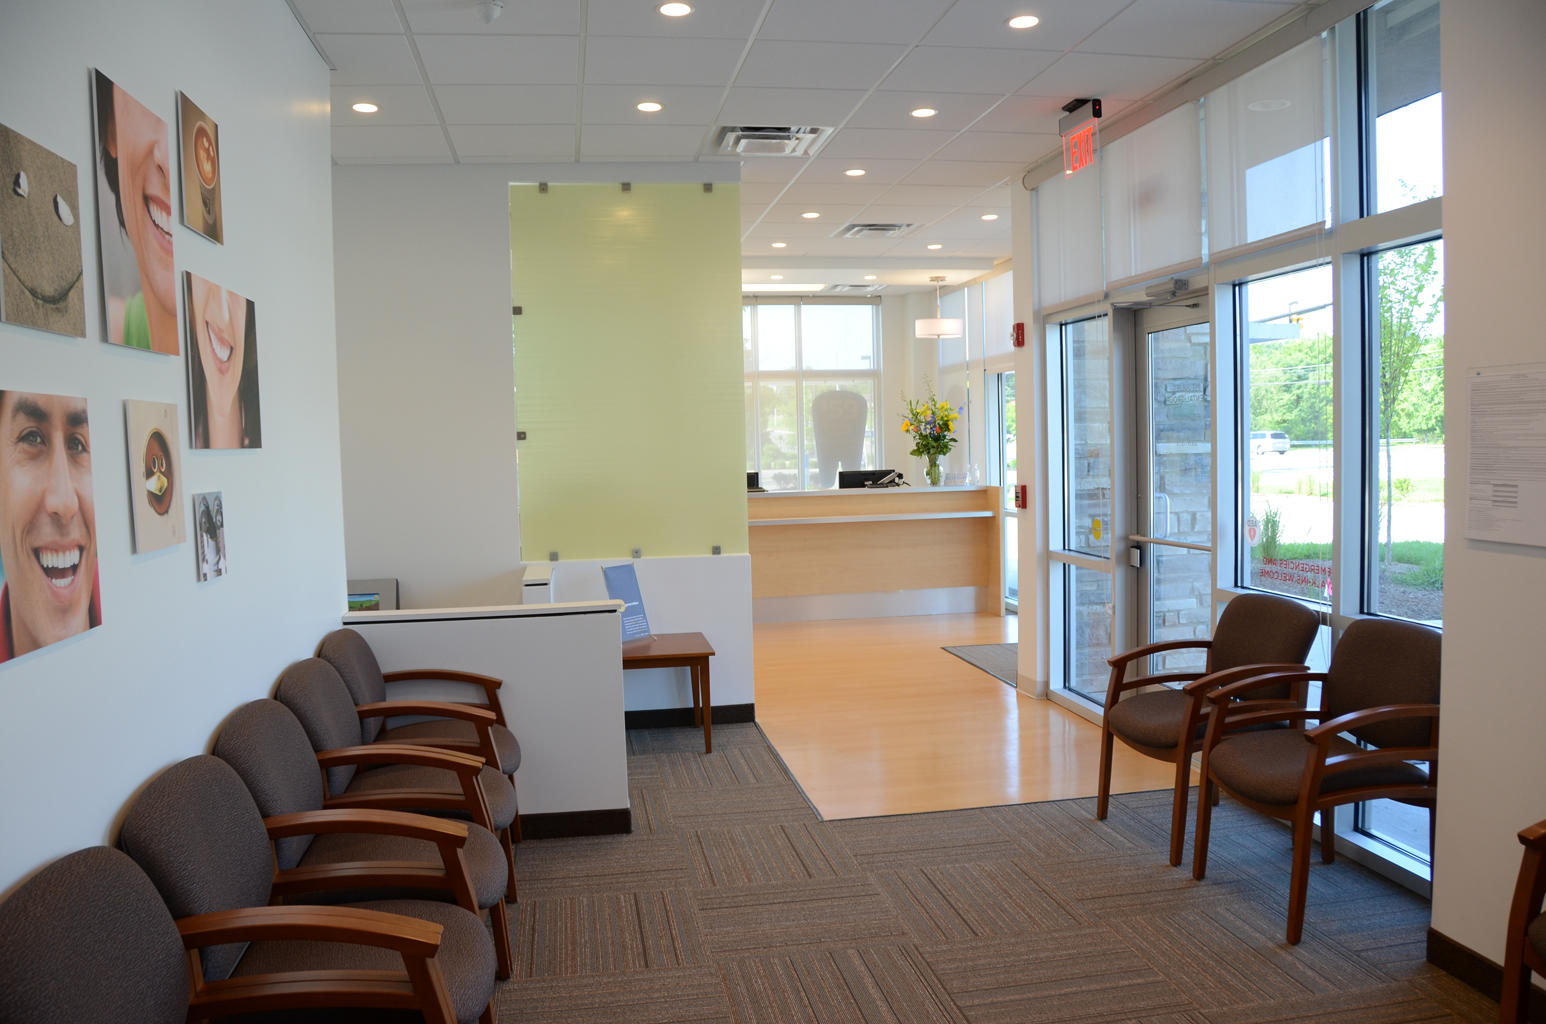 Mt Juliet Dental Group image 3